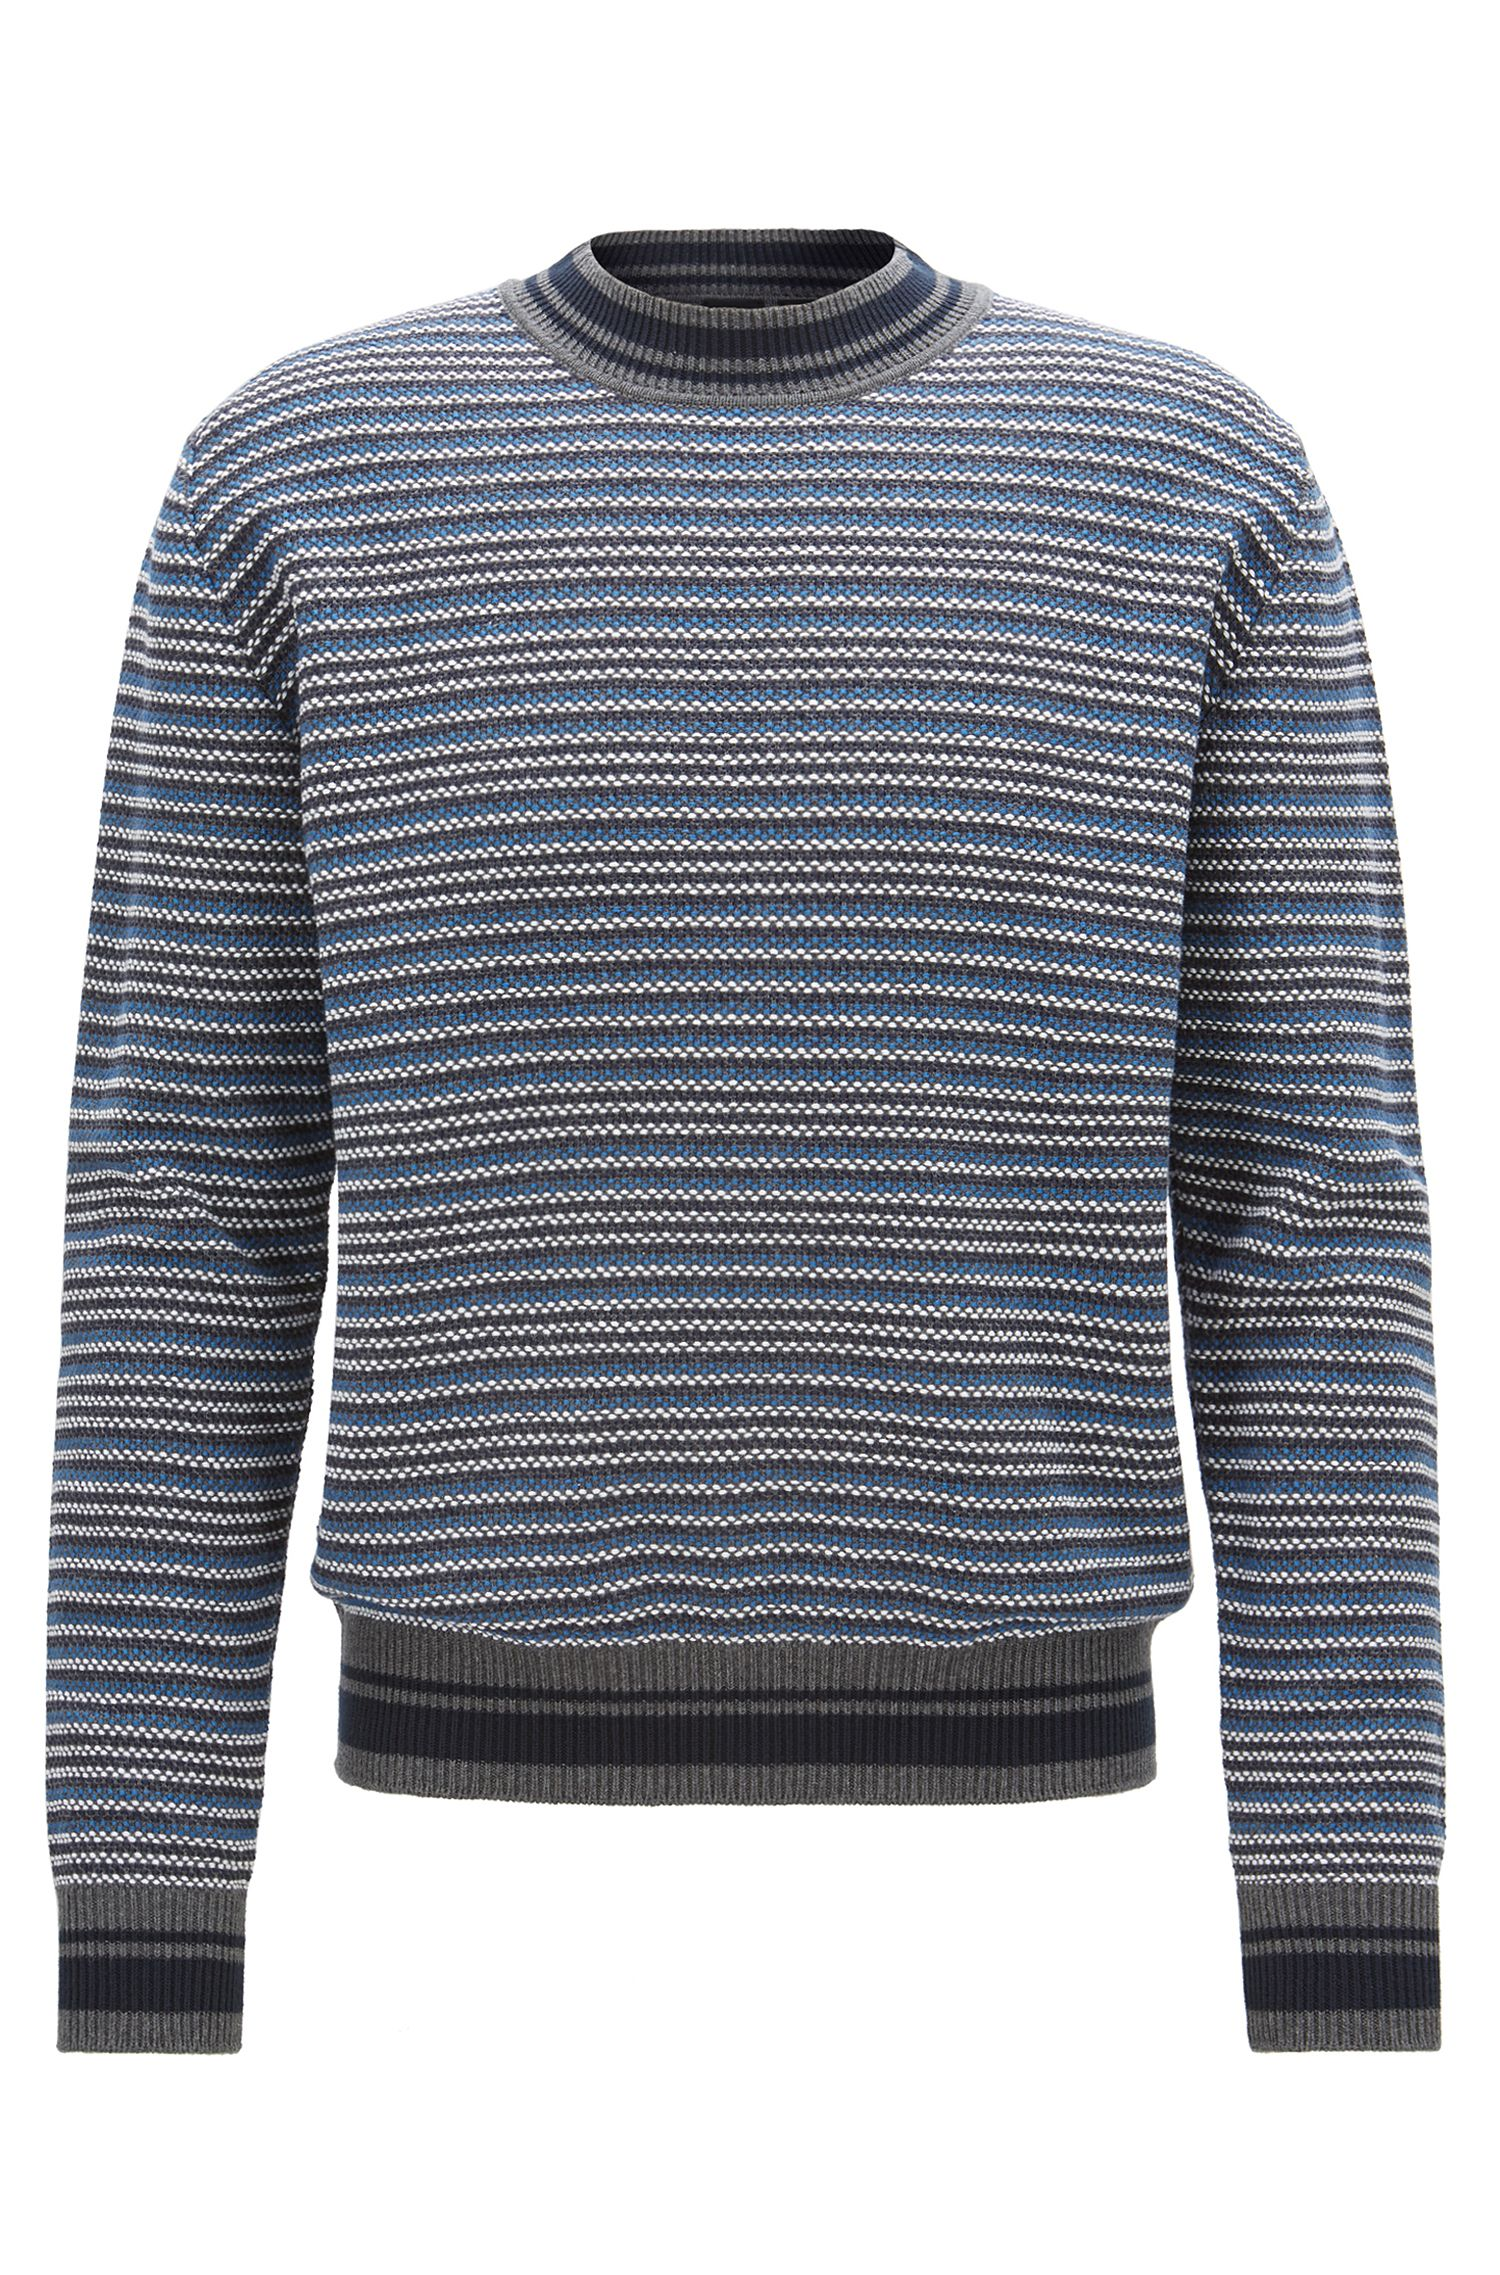 Multi-textured striped sweater in cotton jacquard, Grey